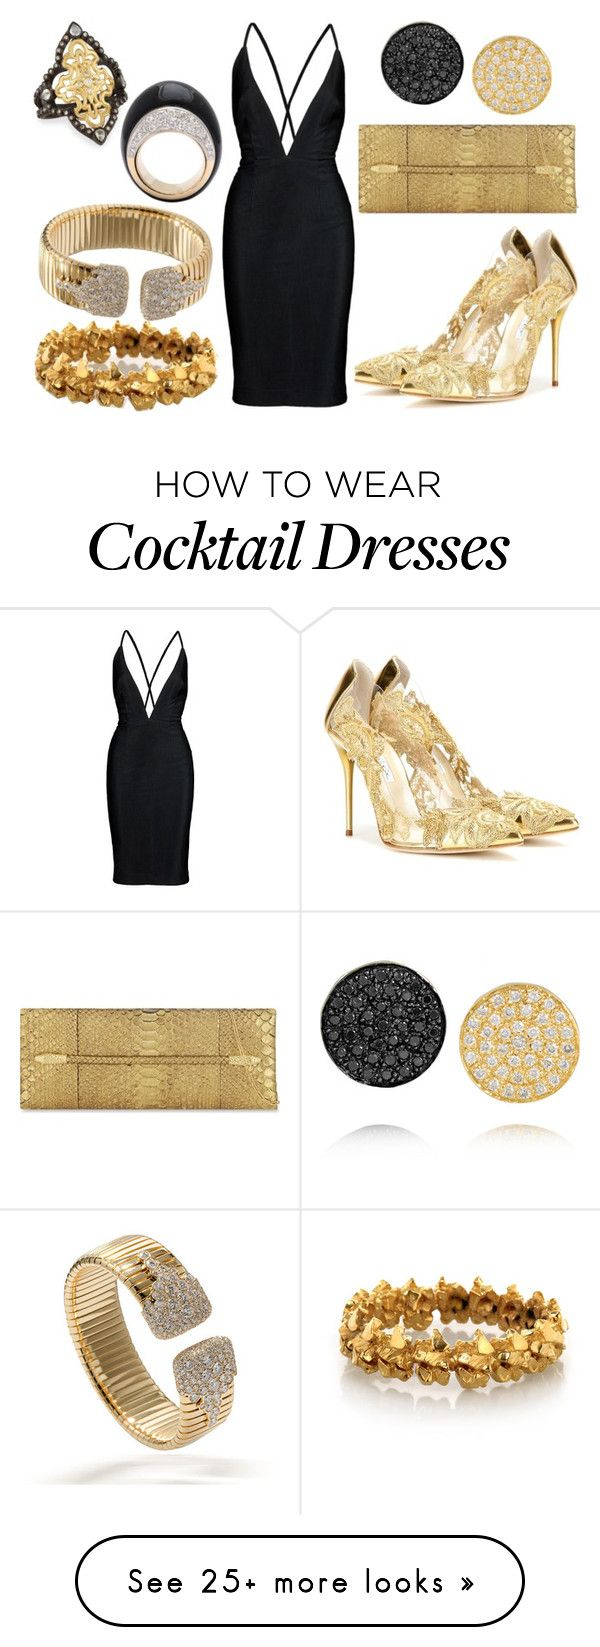 """Nightie"" by dotsandpots on Polyvore featuring Oscar de la Renta, Ileana Makri, Armenta, Tom Ford, Imogen Belfield, women's clothing, women's fashion, women, female and woman"